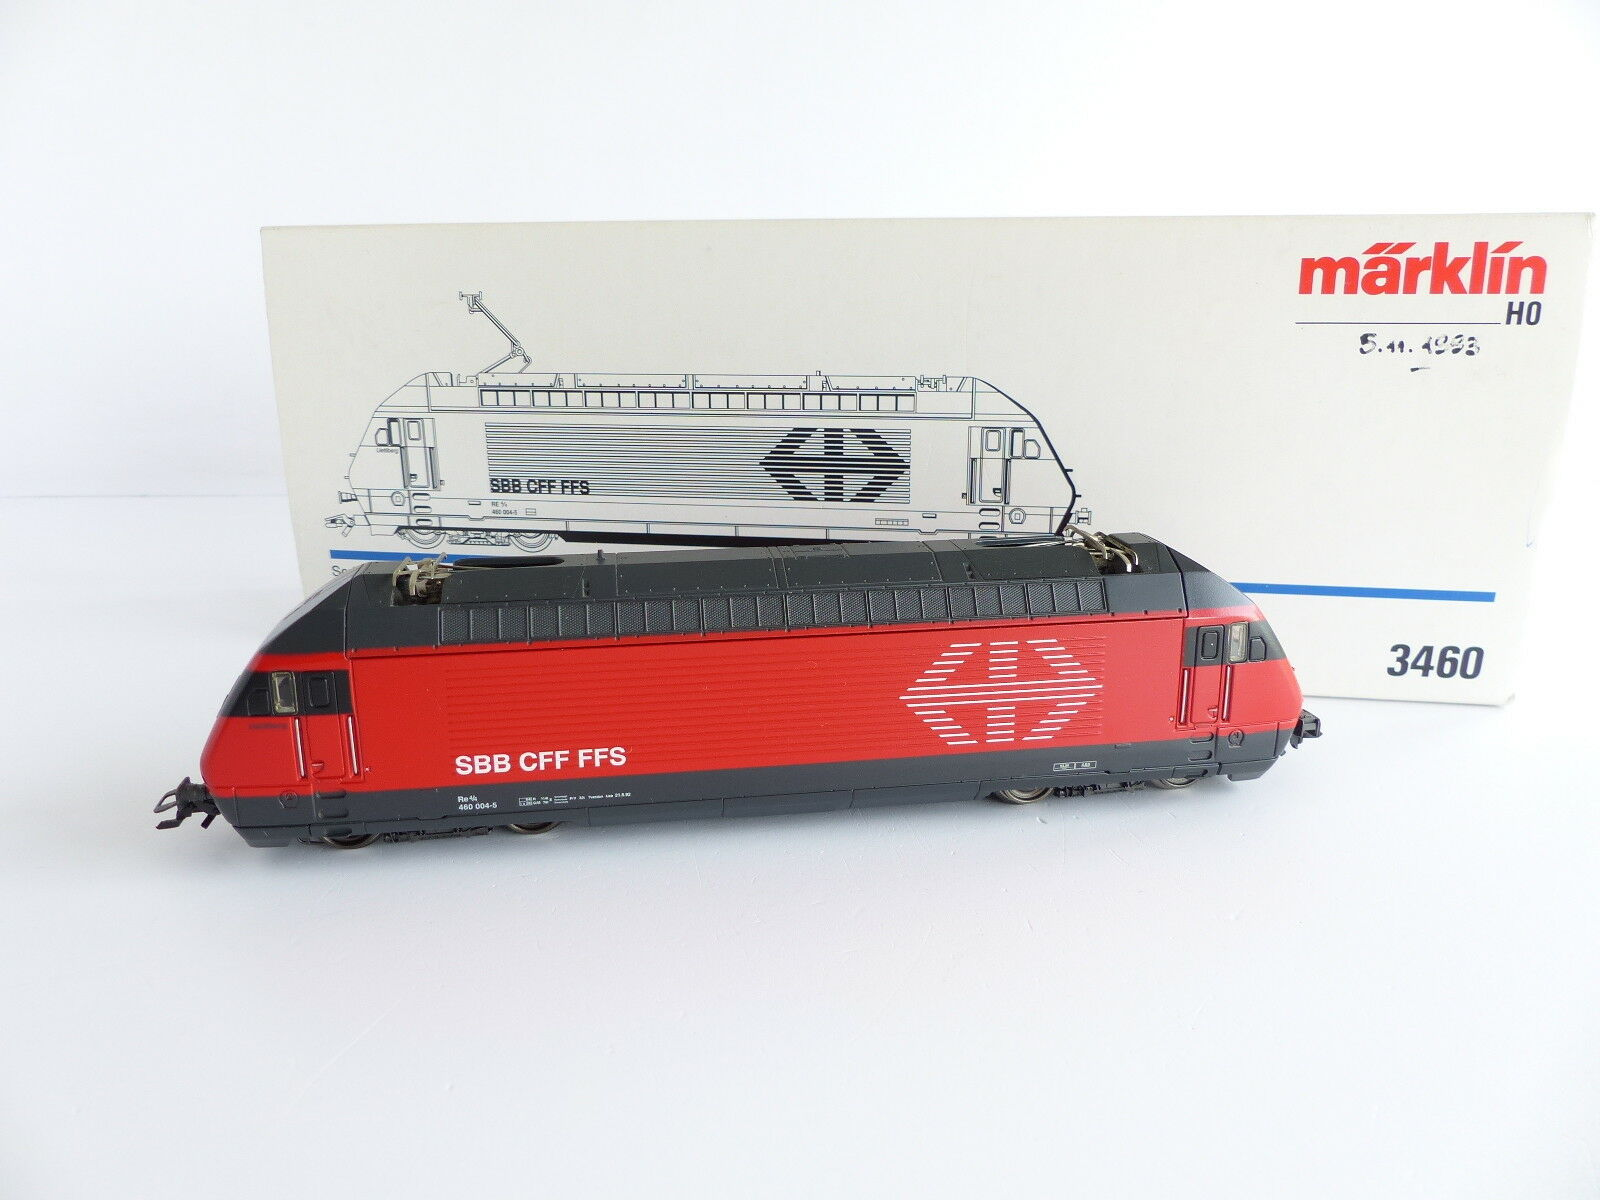 MARKLIN 3460 LOCOMOTIVE ELECTRIQUE SERIE 460 Re 4/4 SBB CFF FFS